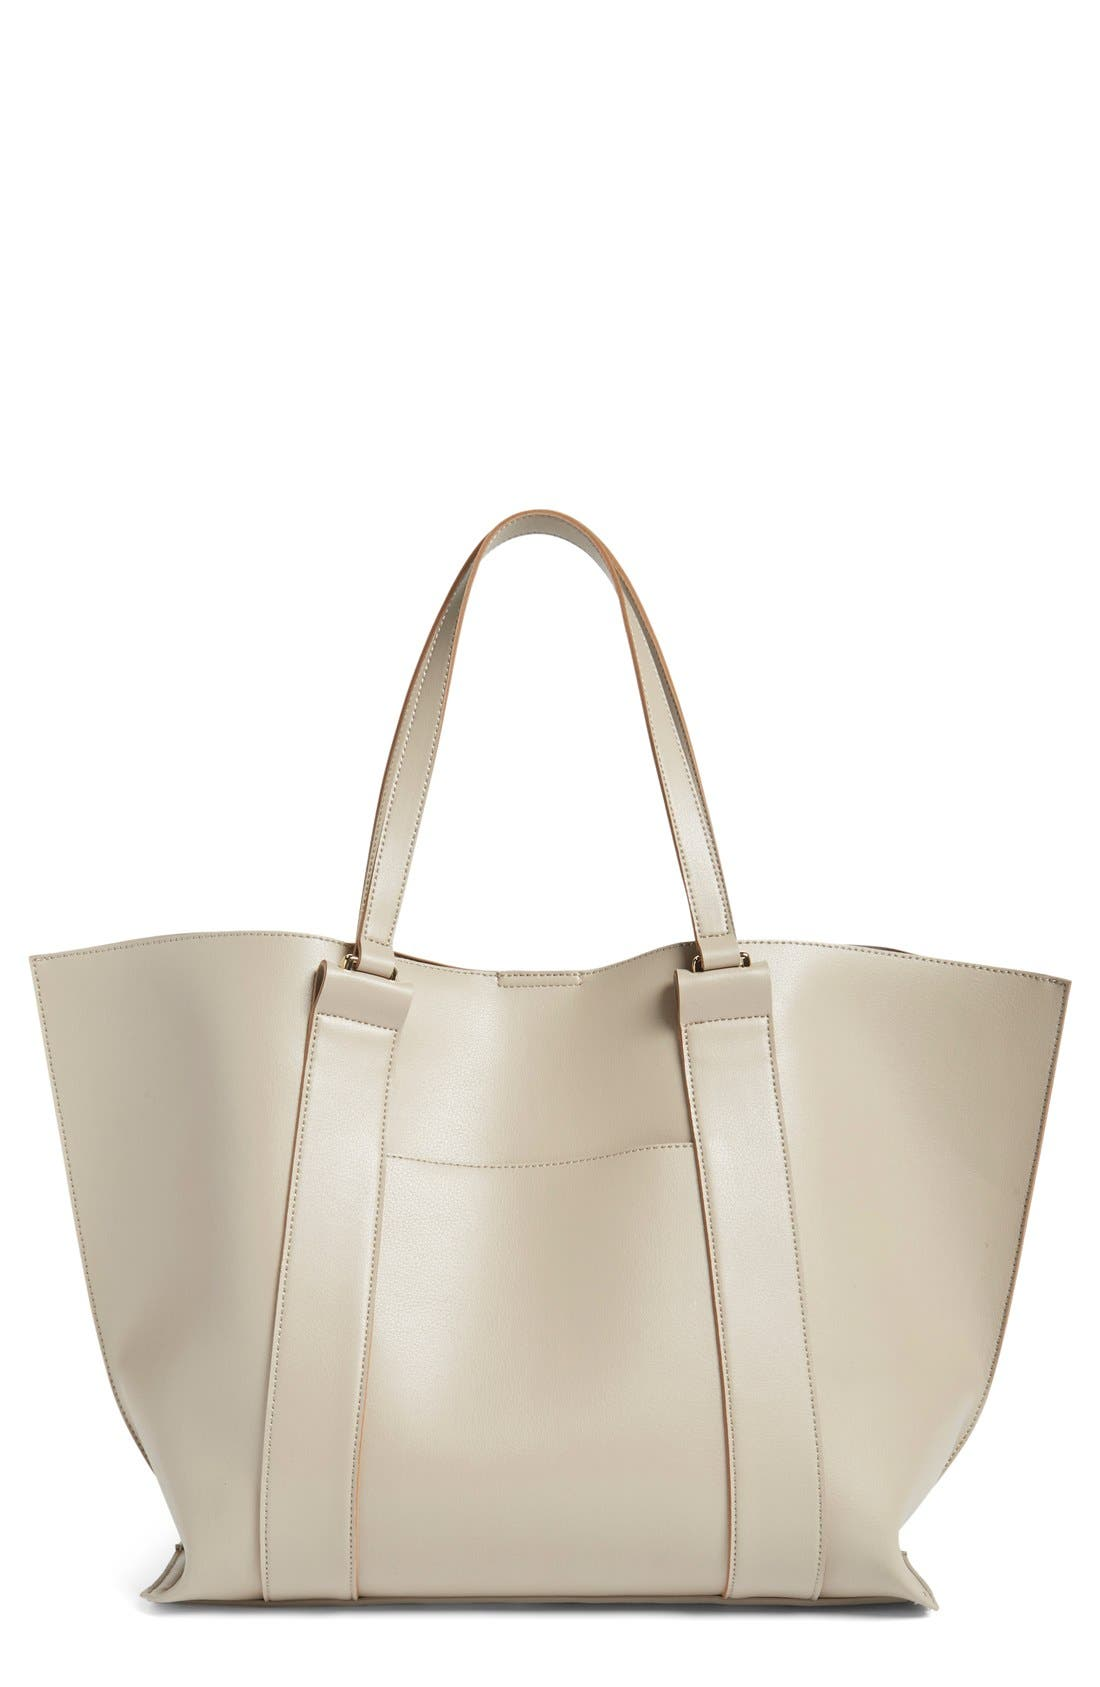 Alternate Image 1 Selected - Sole Society 'Ravin' Tote